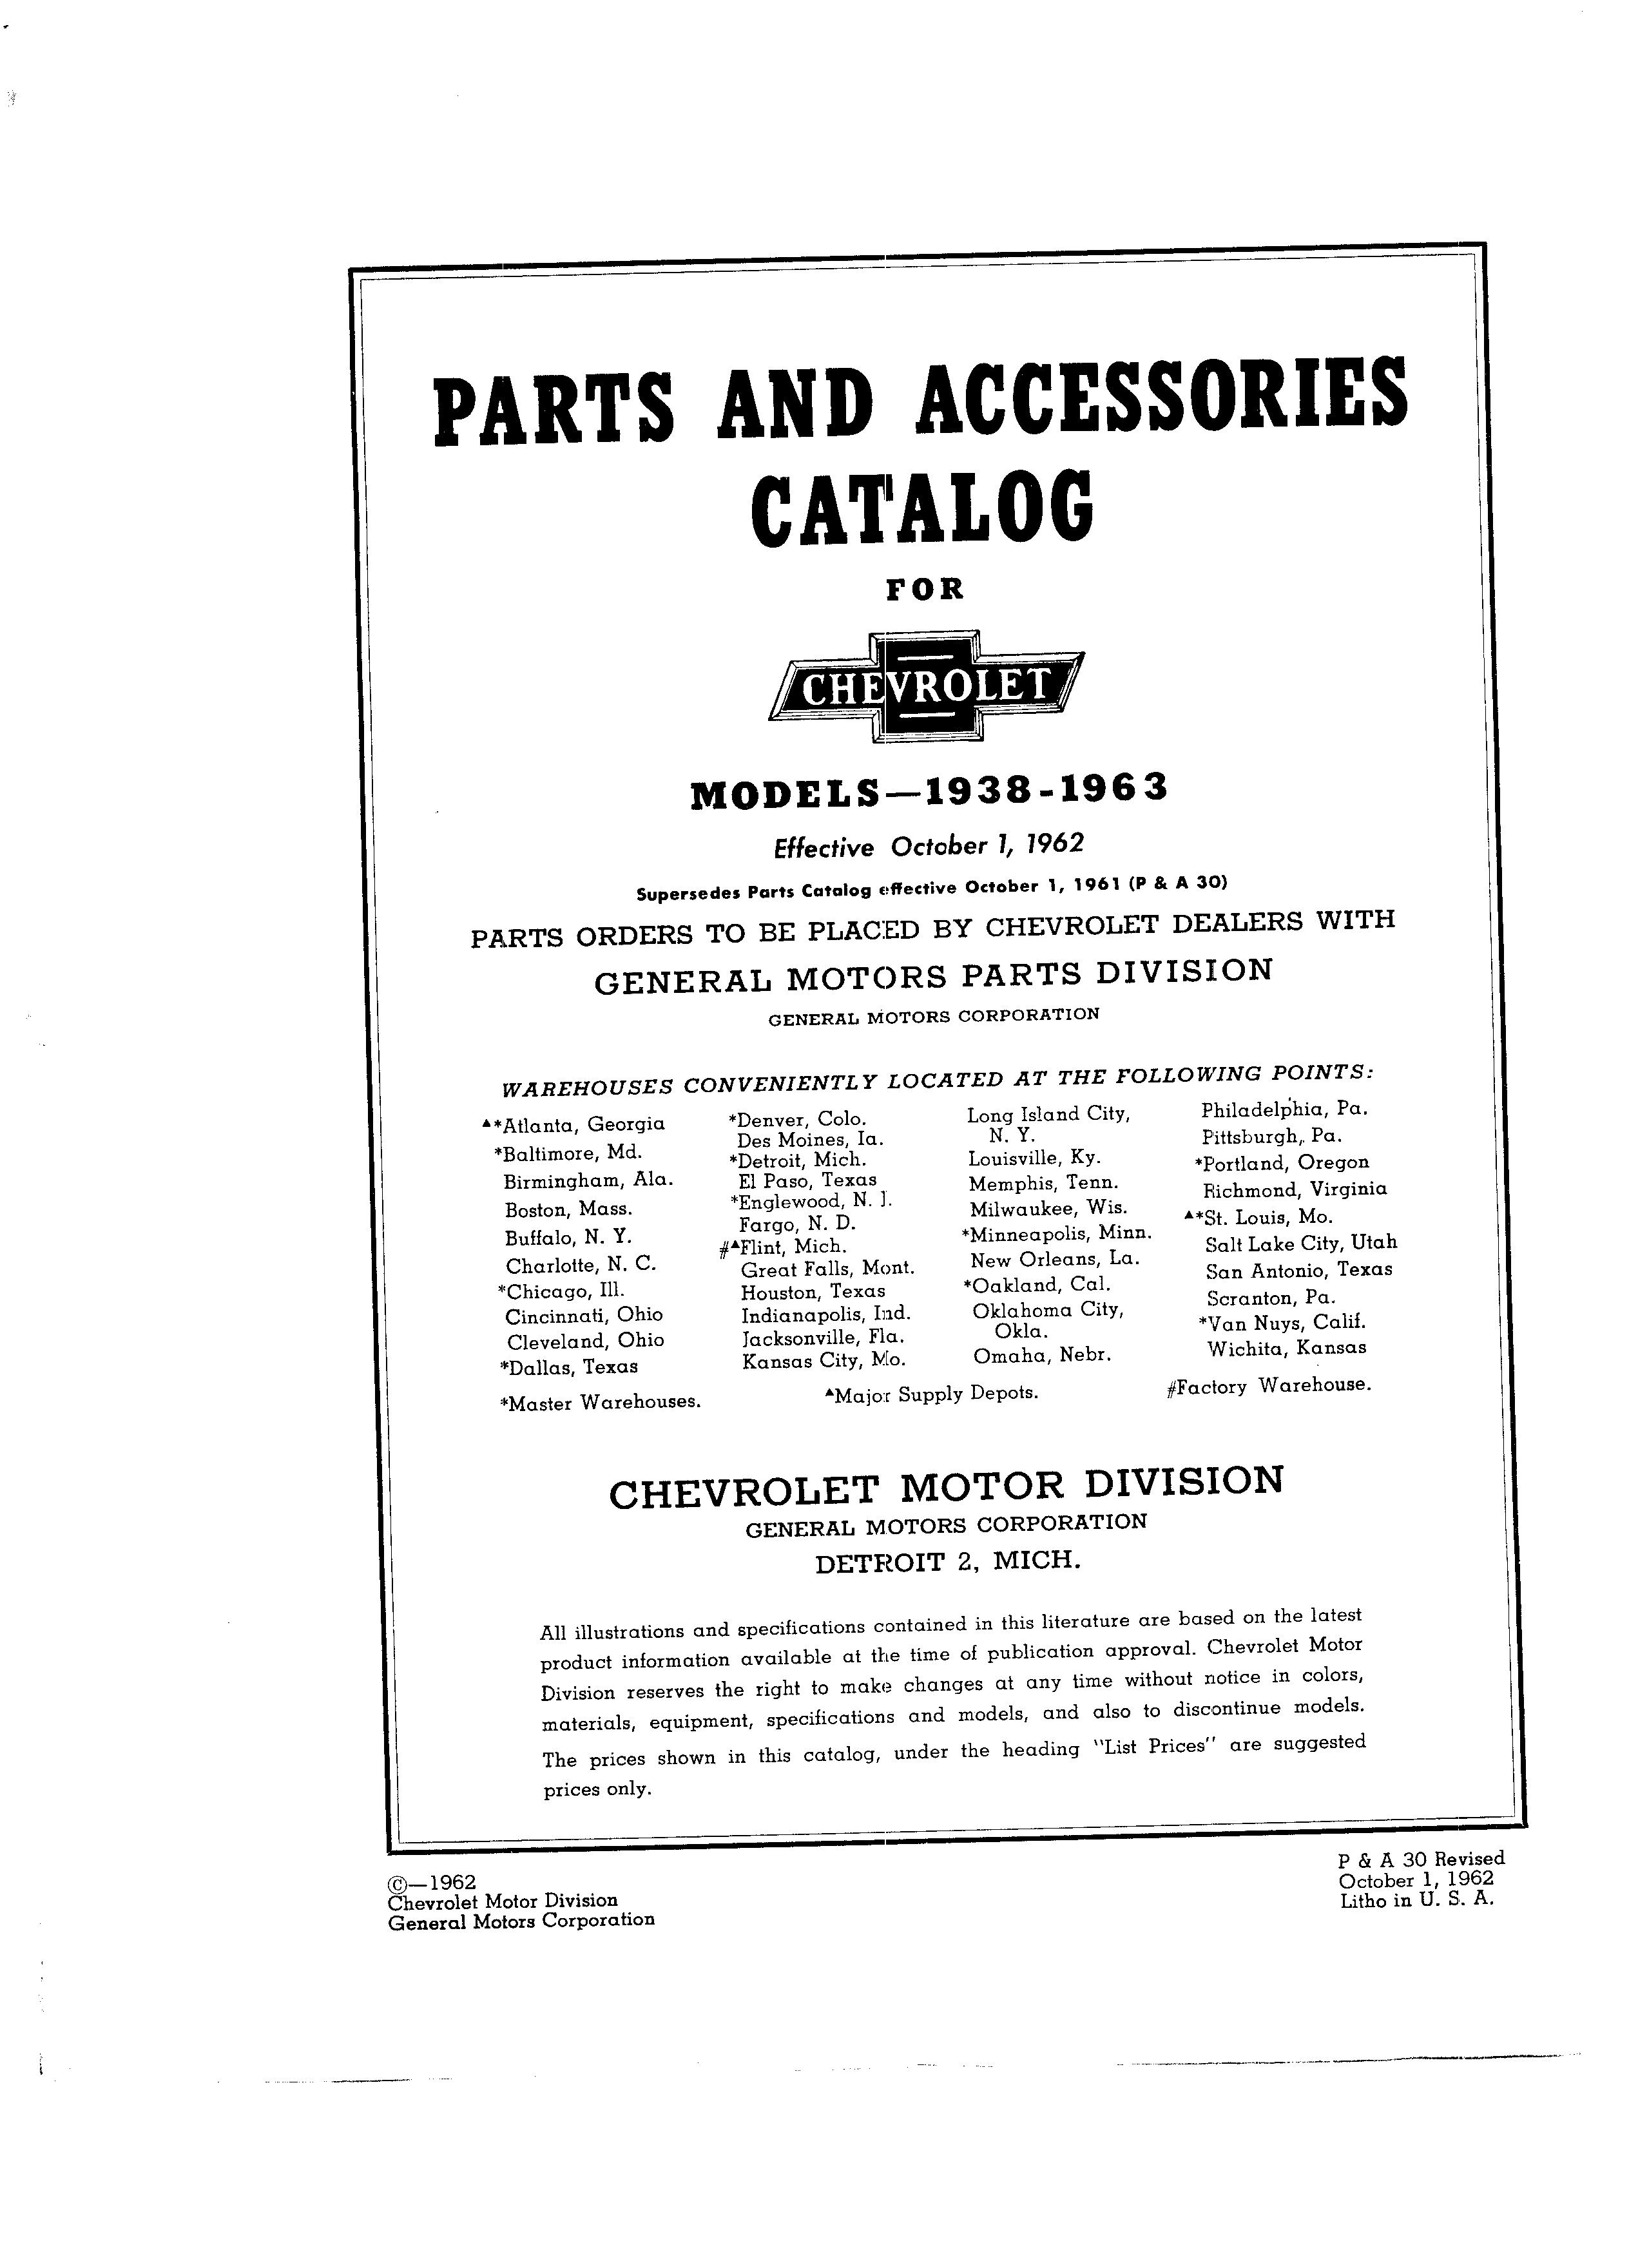 Parts and Accessories Catalog P&A 30 October 1962